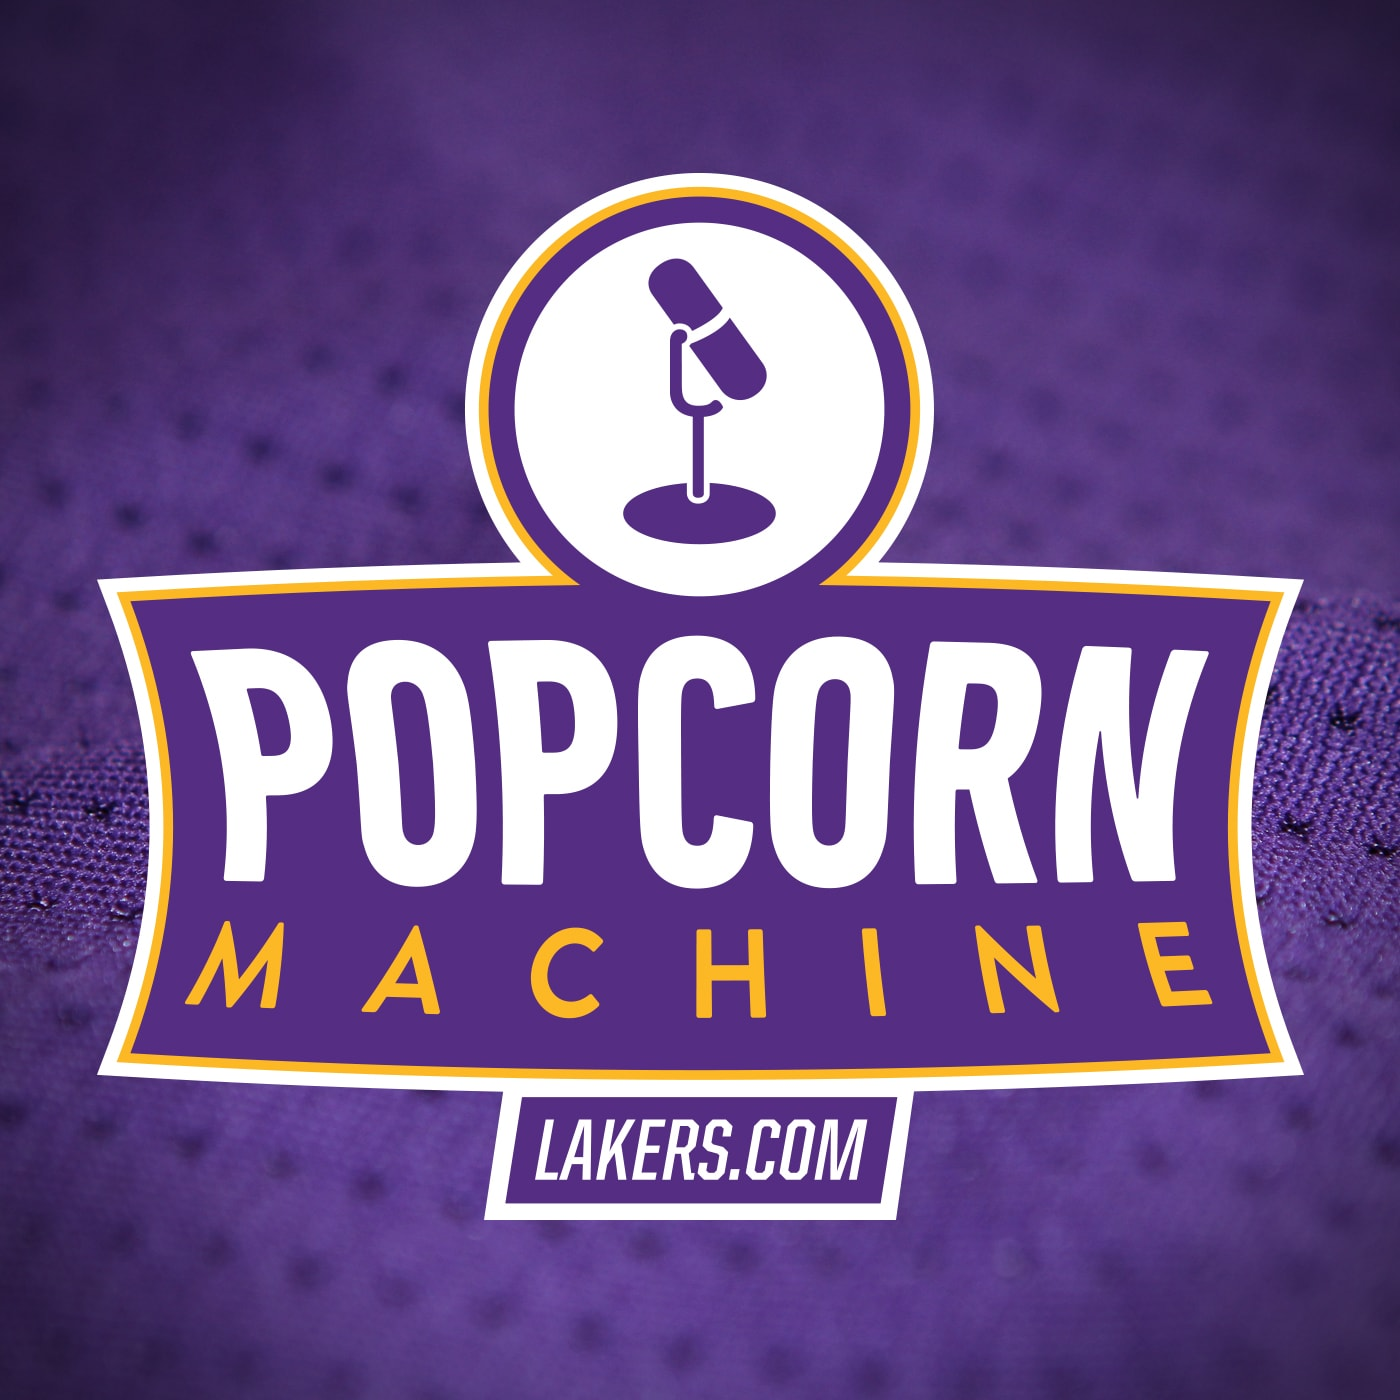 The Popcorn Machine